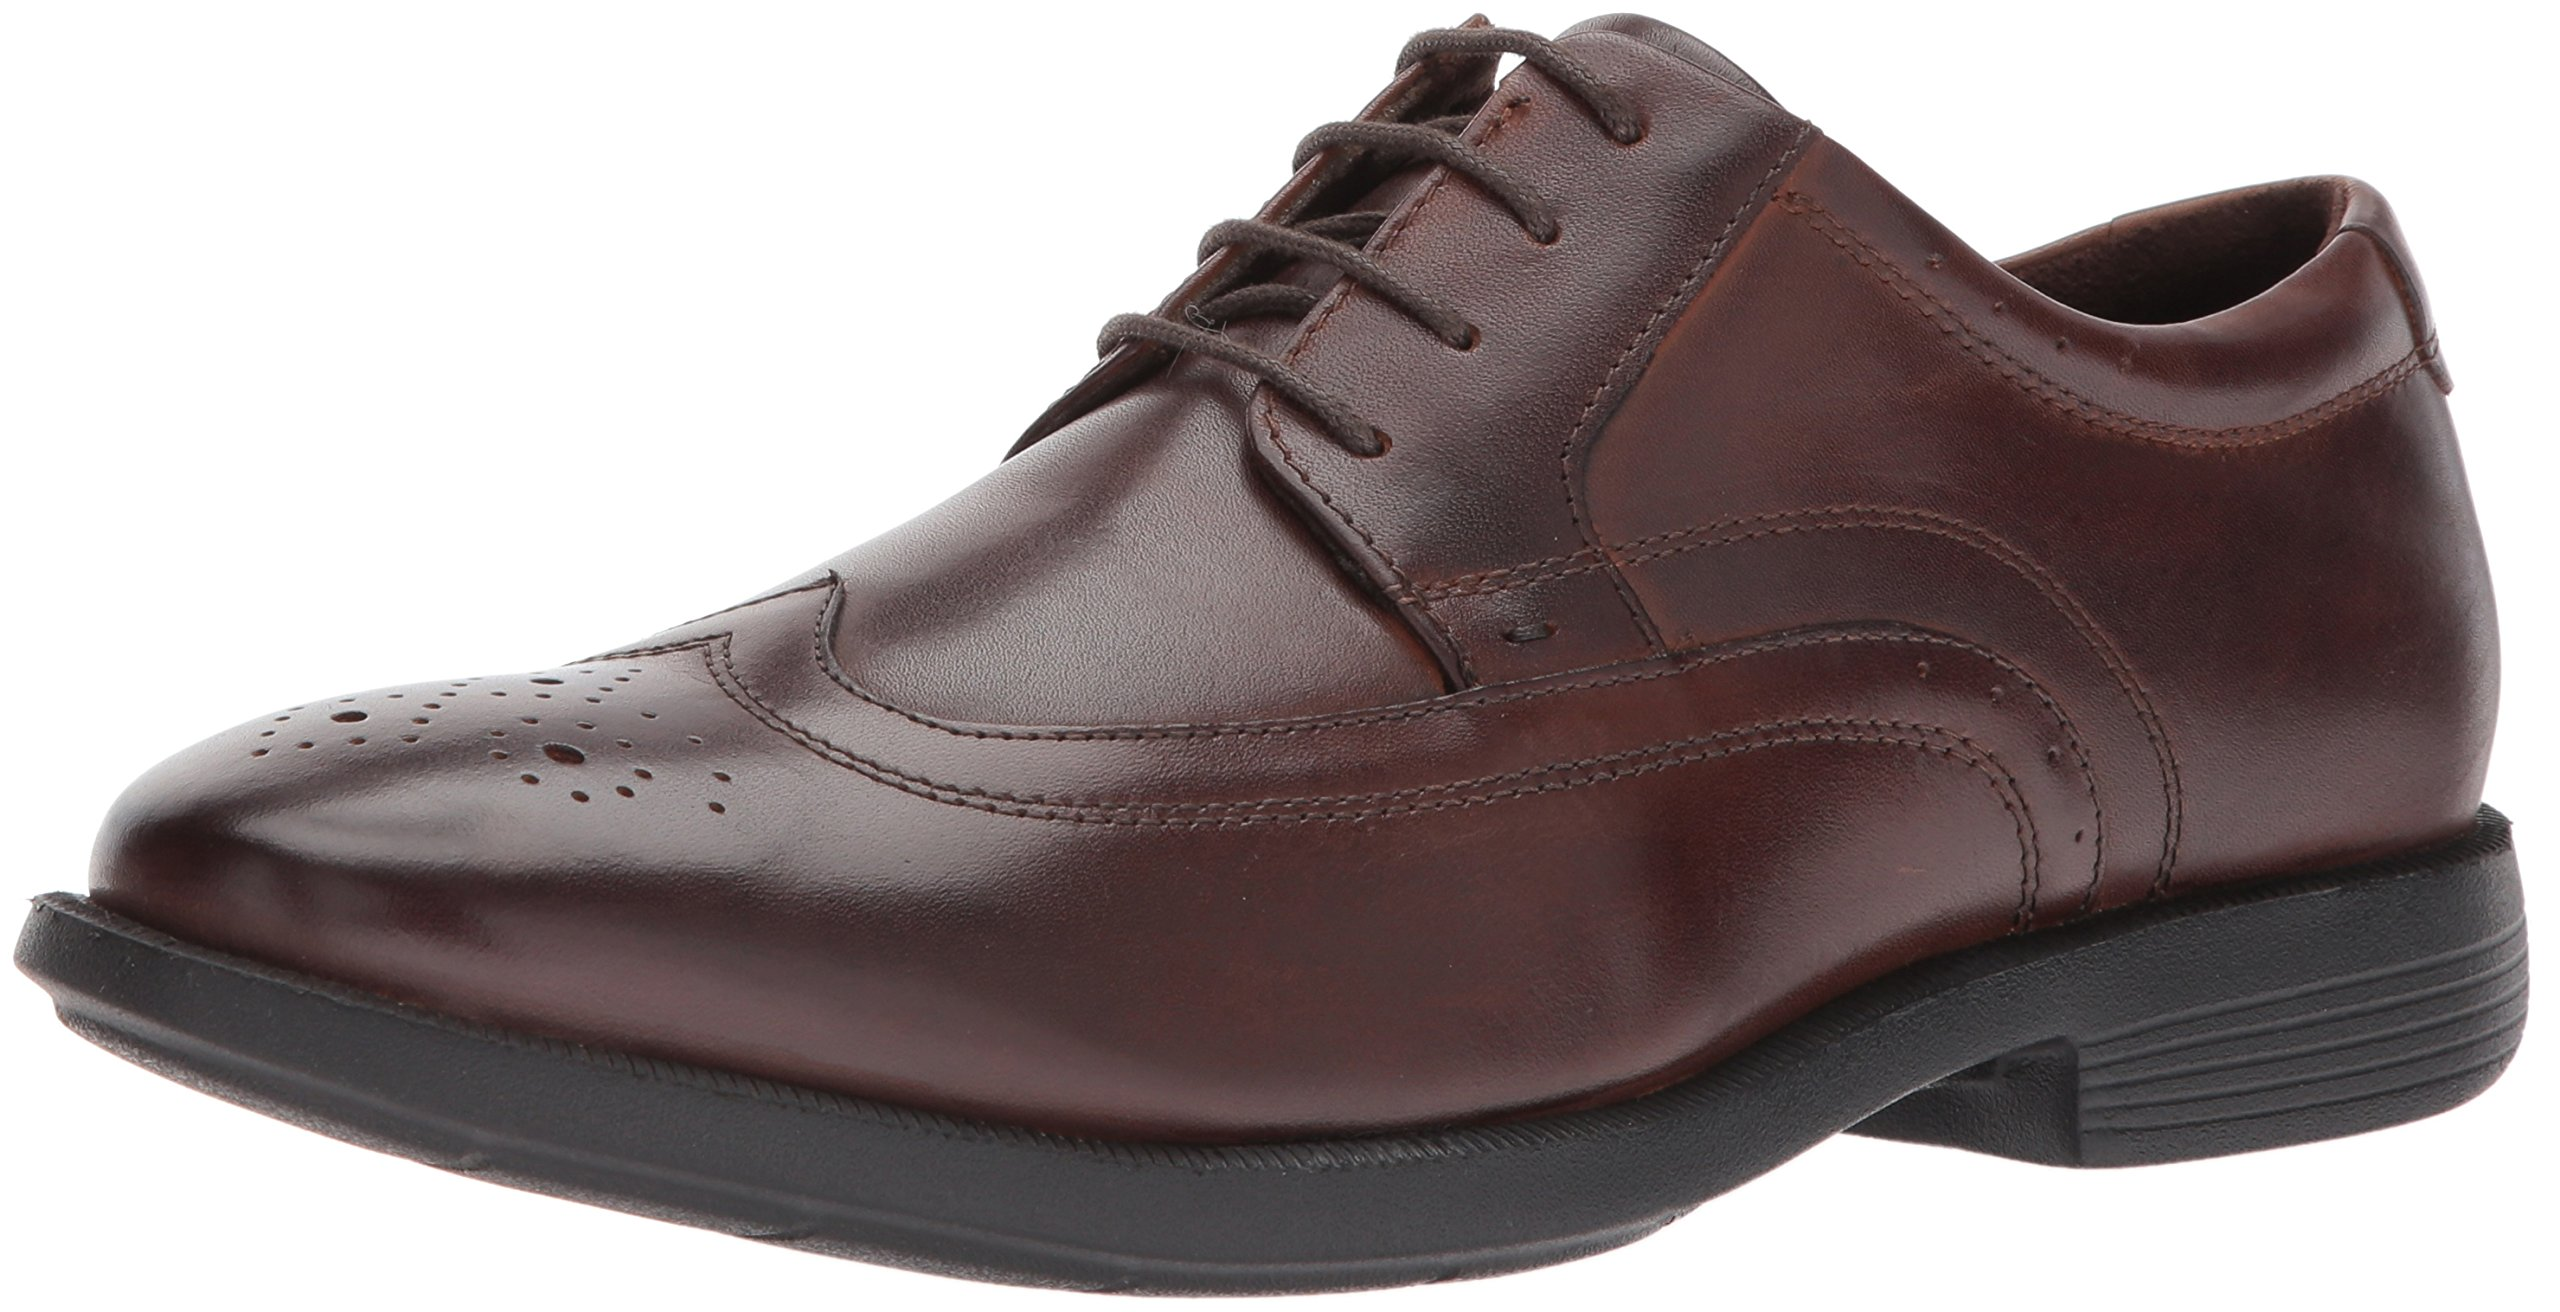 Nunn Bush Men's Decker Wing-Tip Lace up Oxford with KORE Comfort Technology